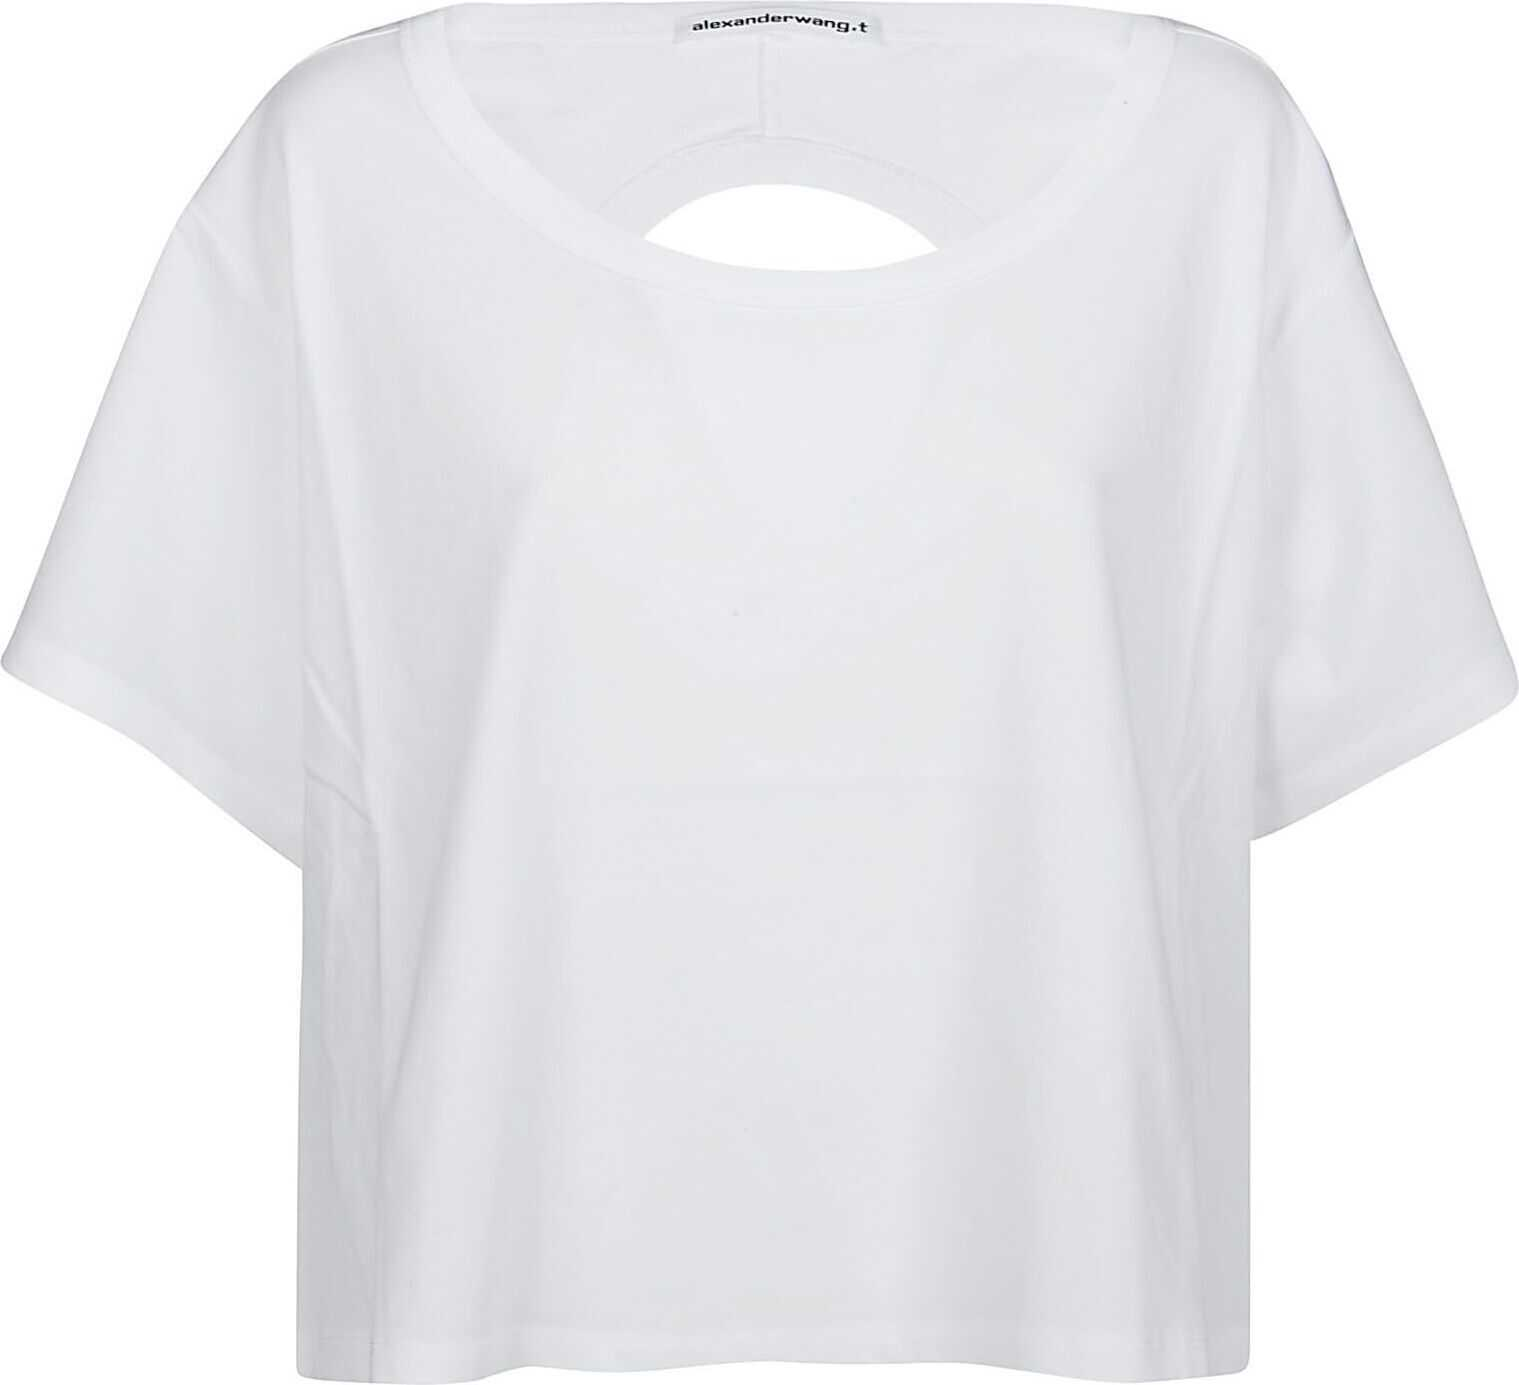 Alexander Wang Cotton Top WHITE